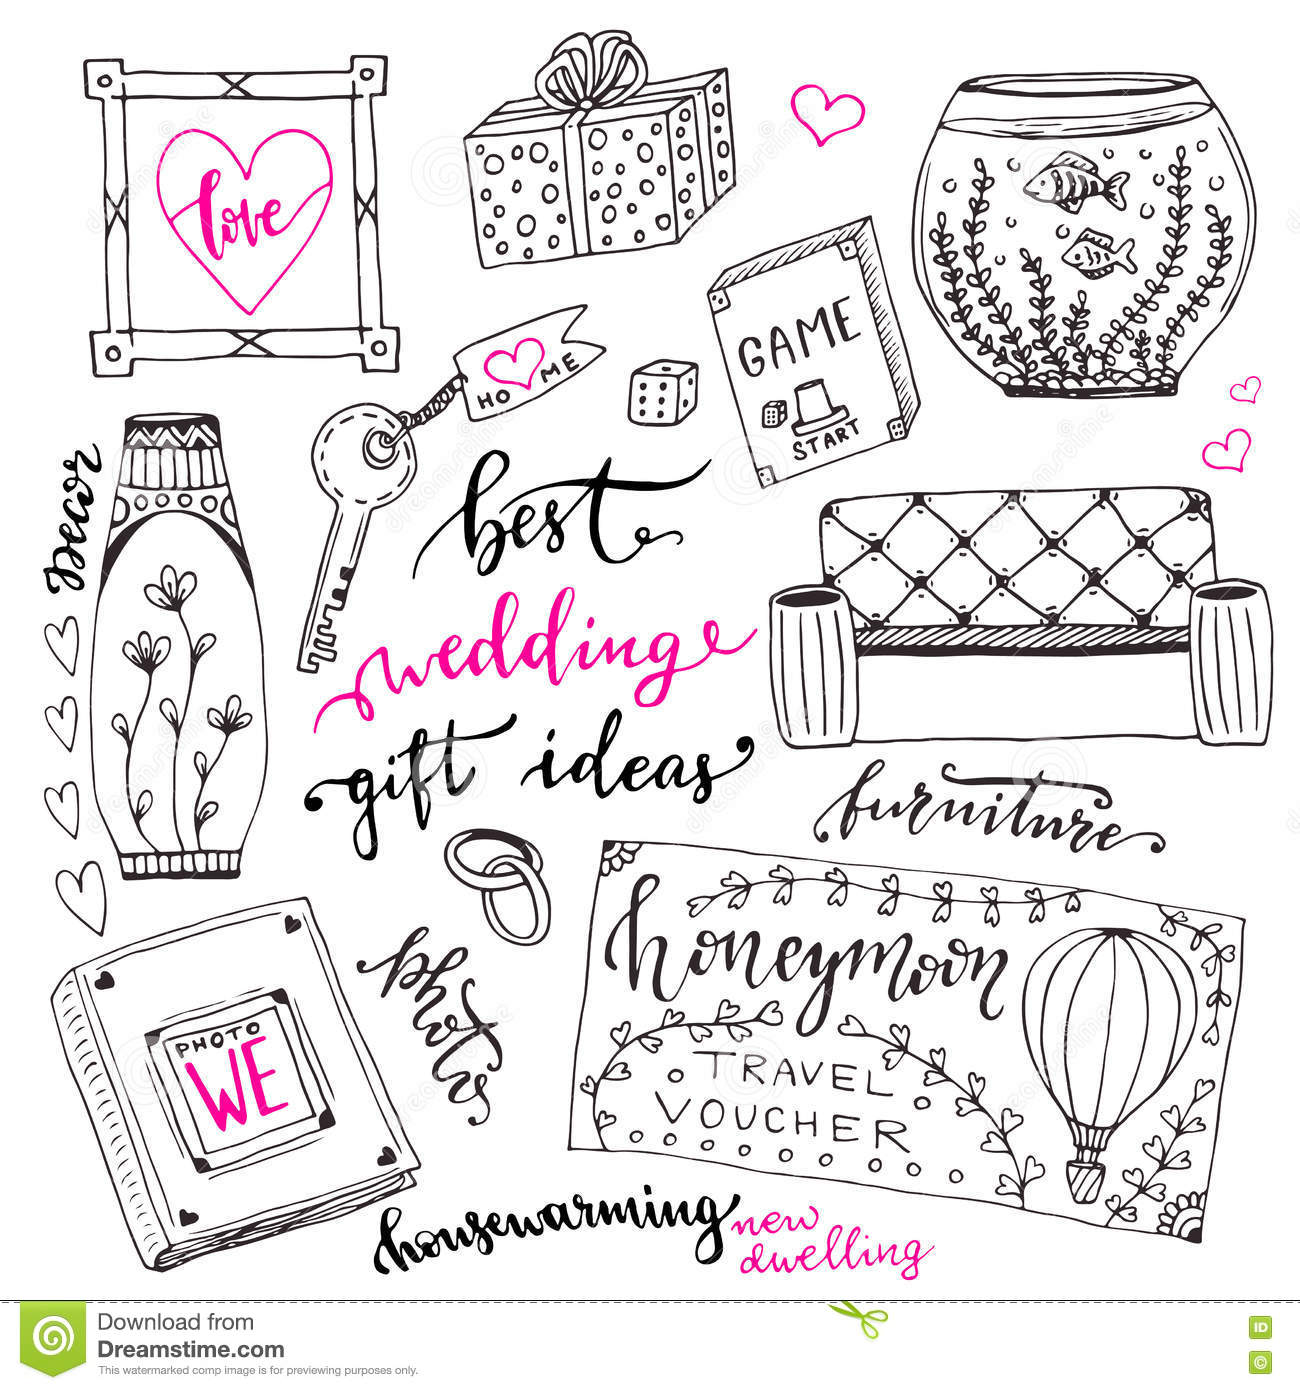 wedding gift ideas set cartoon doodle illustration for wedding